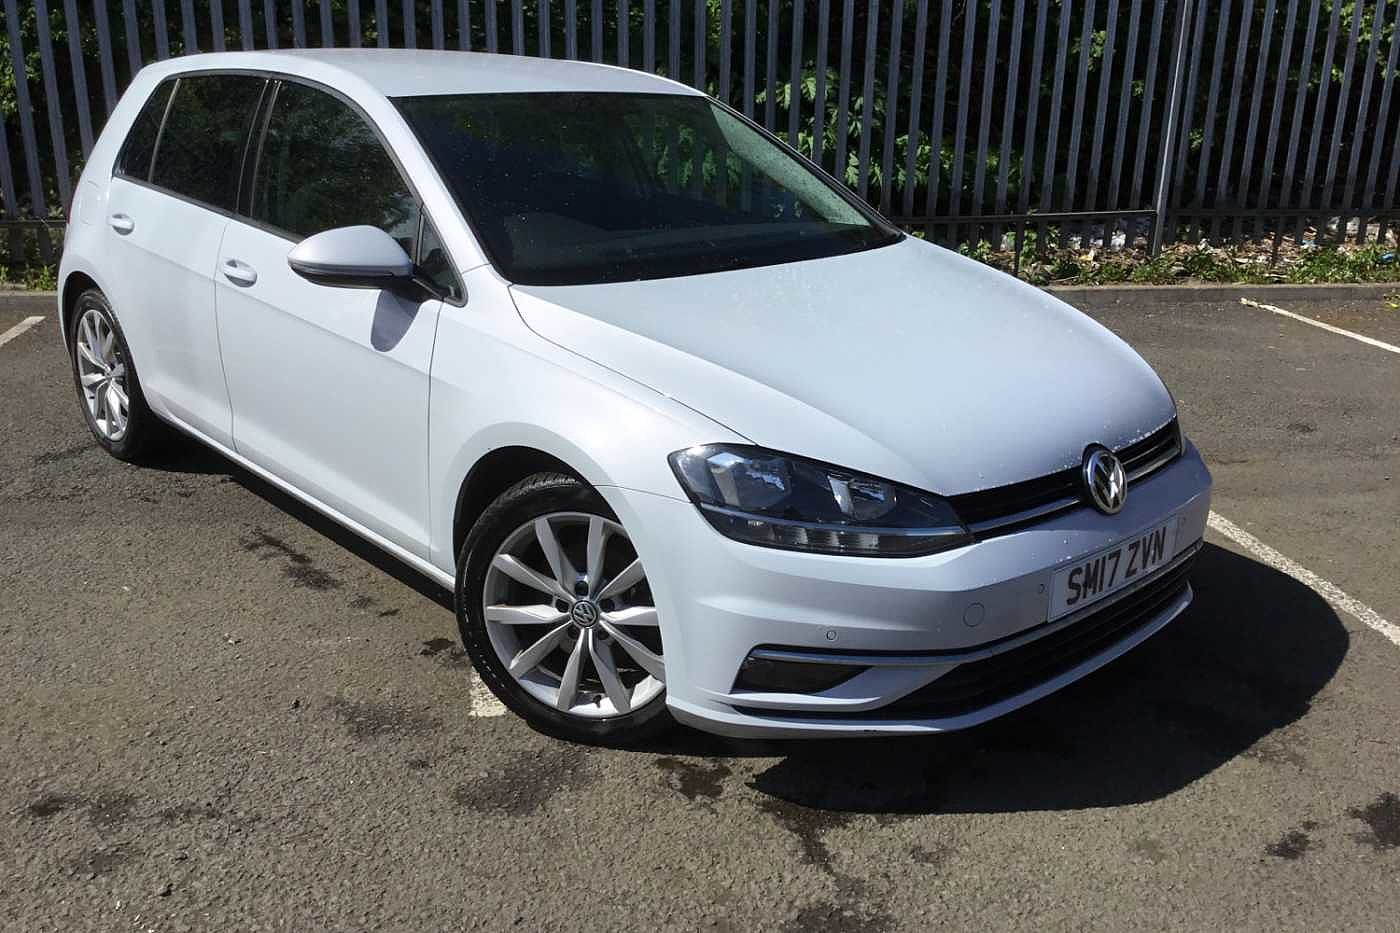 2017 Golf MK7 Facelift 1.6 TDI GT 115PS 5Dr for Sale in Edinburgh